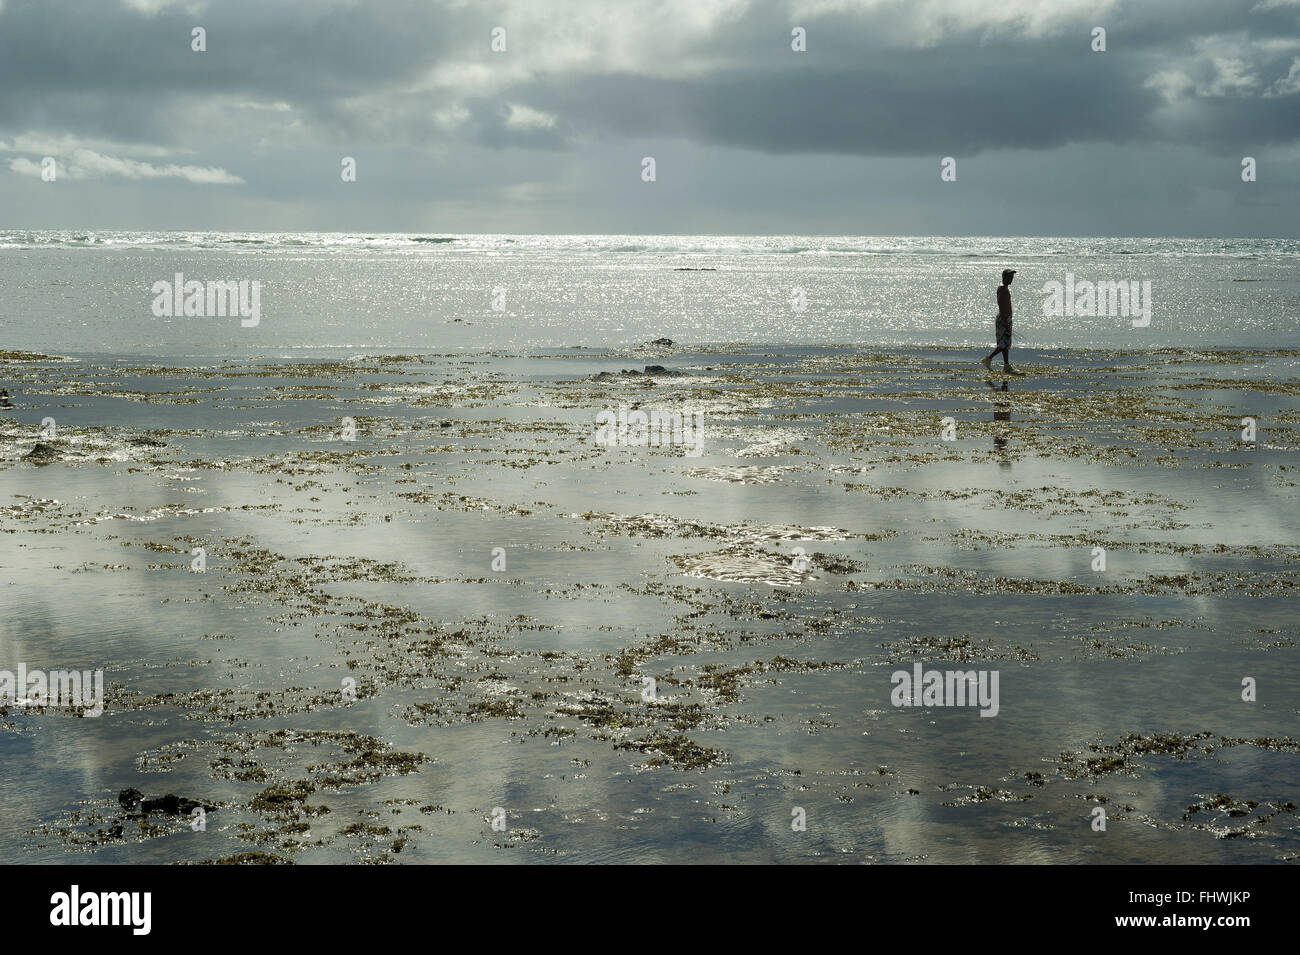 Puddles formed by the mare and coral reefs in the Taipu Praia de Fora - Stock Image